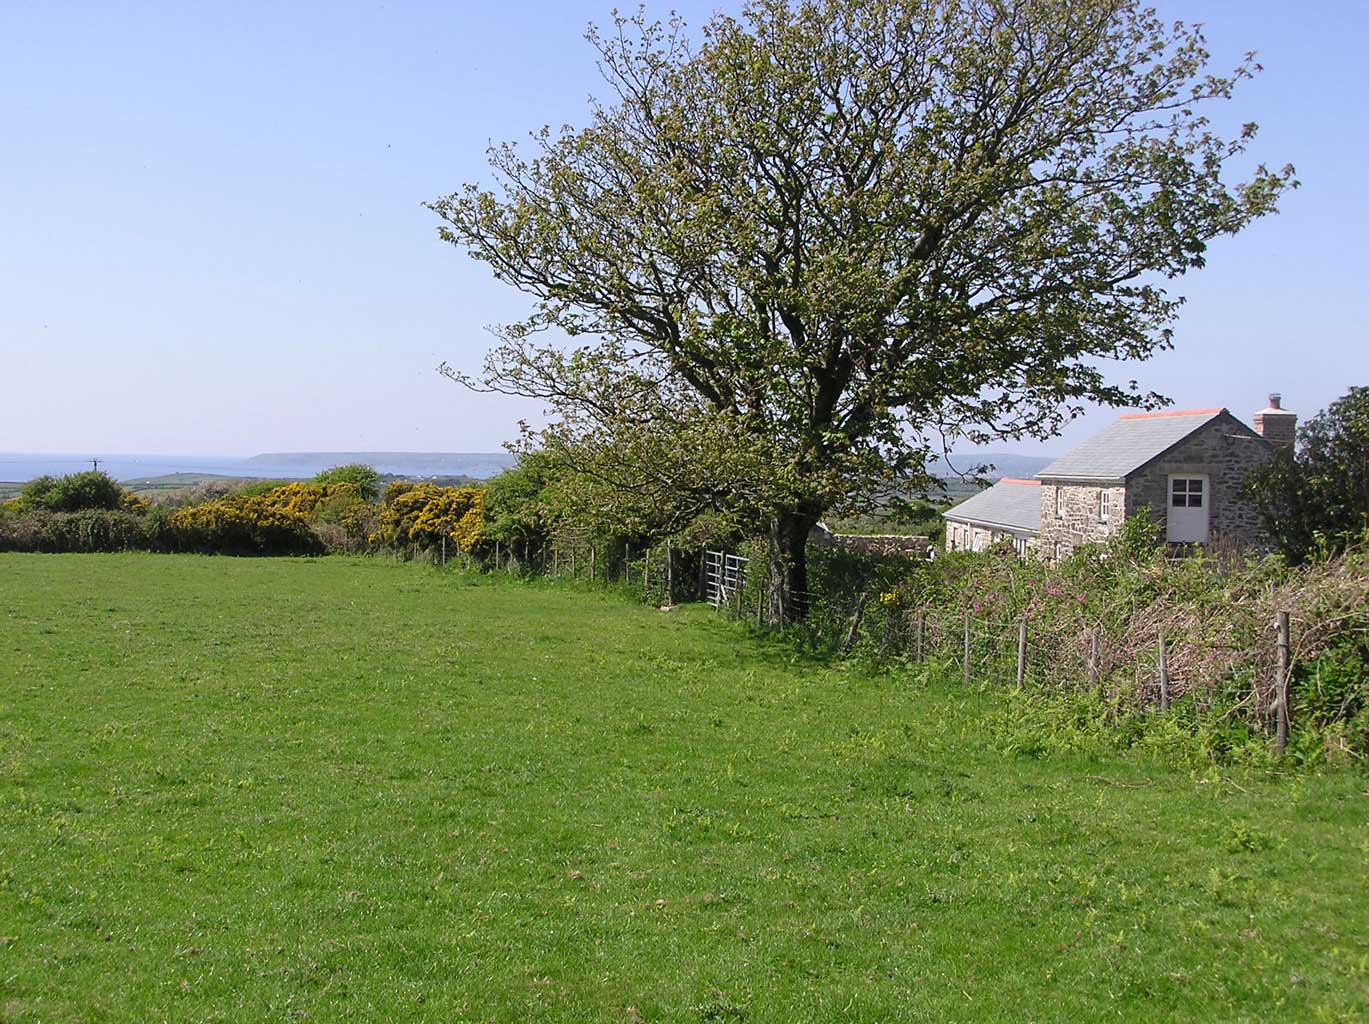 Mazey's Cottage from the field in front (The Badger Field)